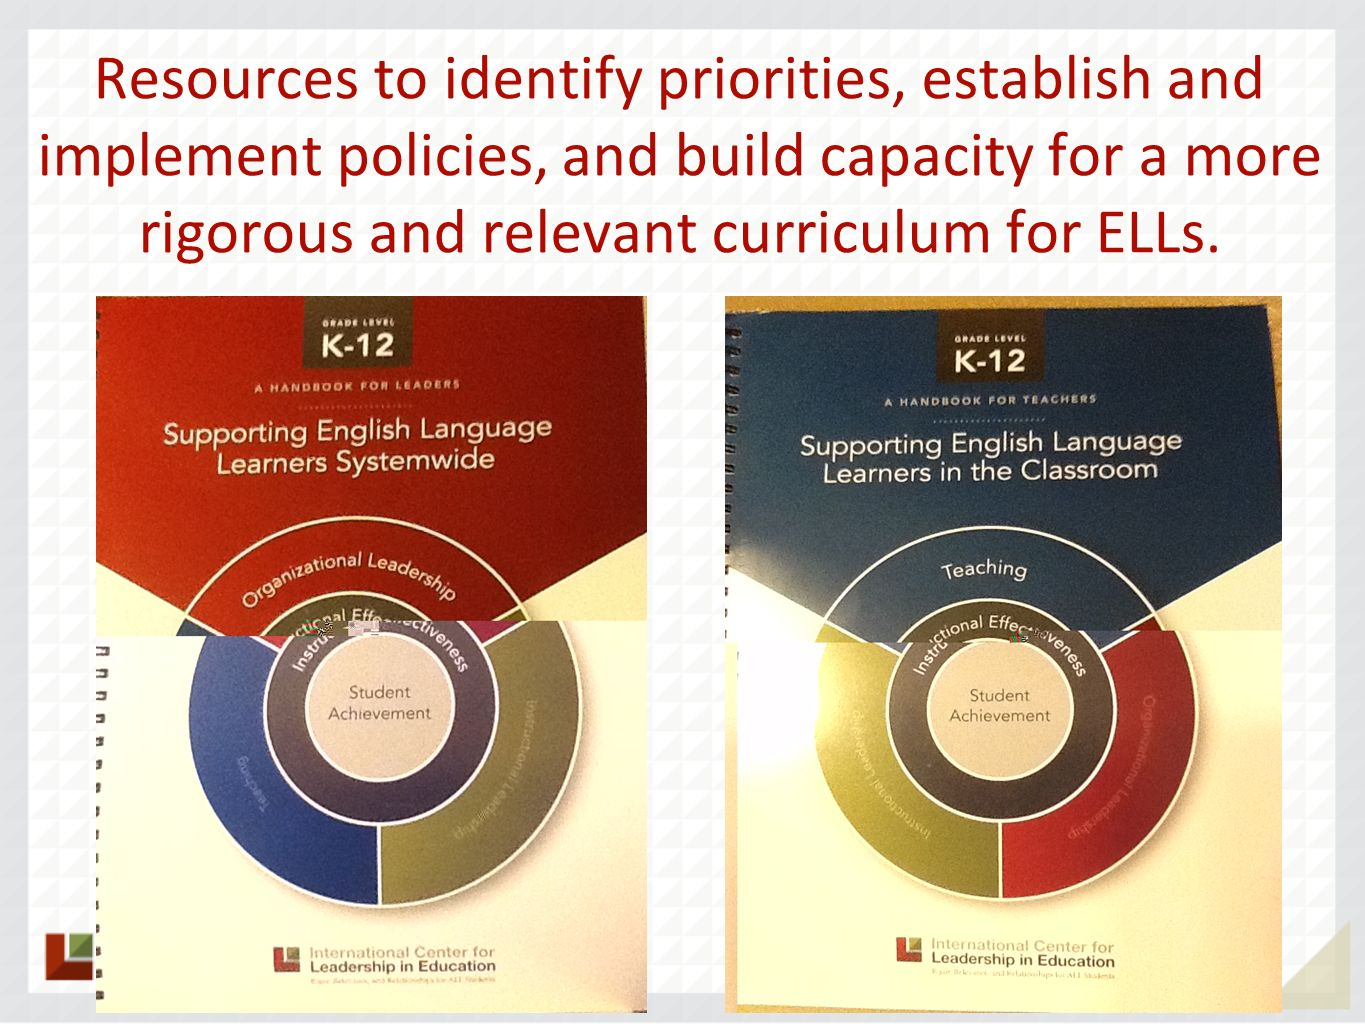 Resources to identify priorities, establish and implement policies, and build capacity for a more rigorous and relevant curriculum for ELLs.